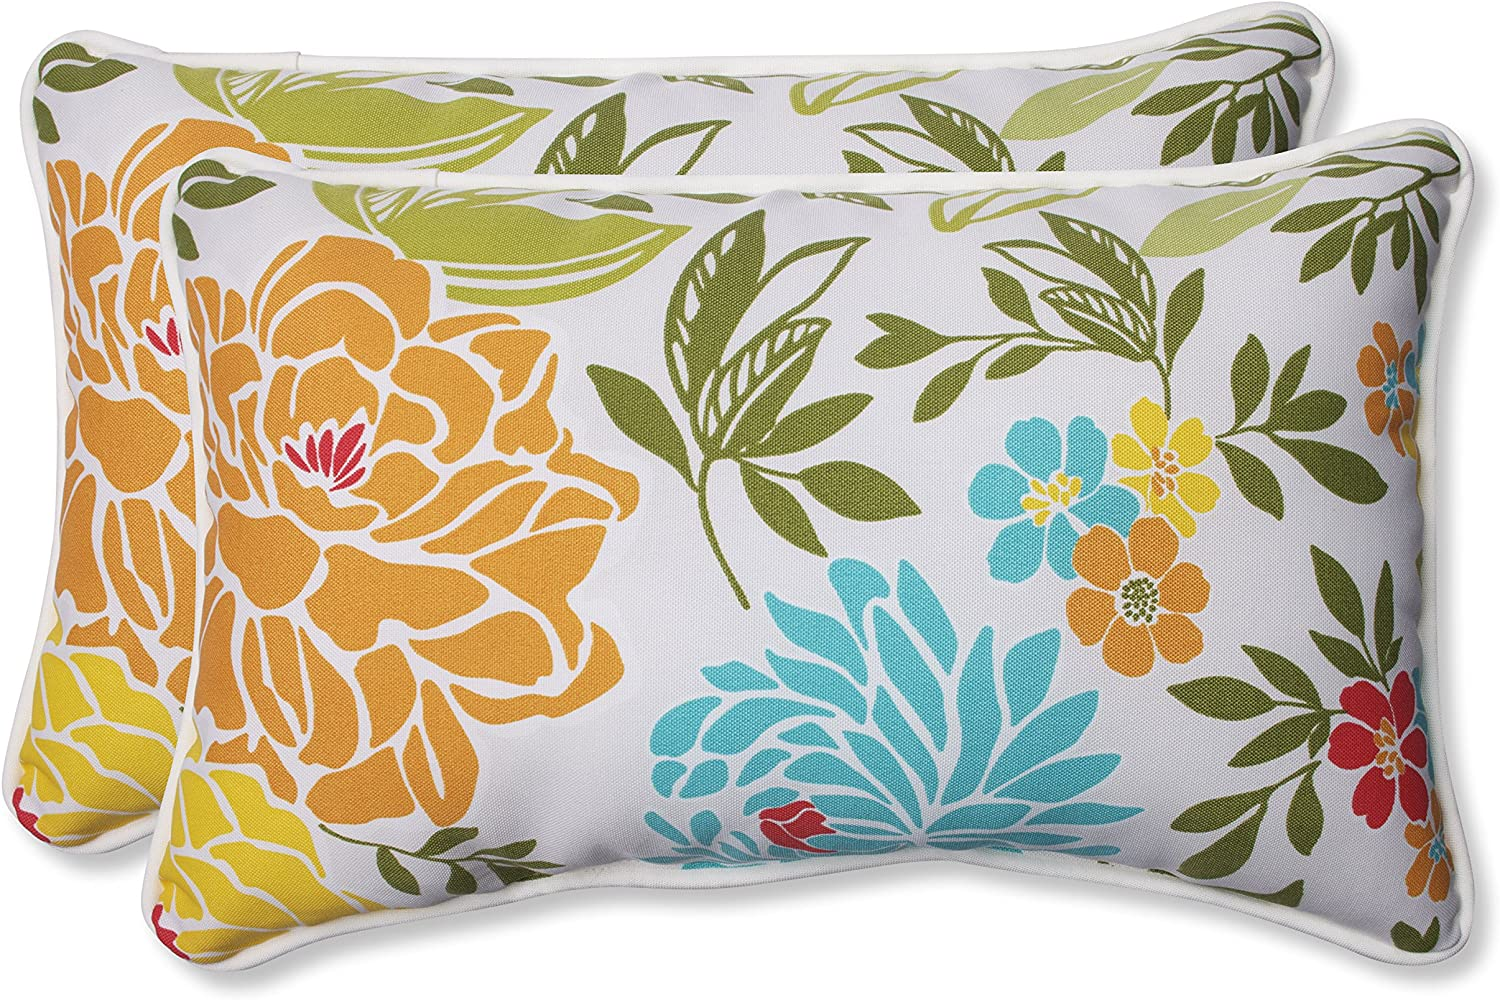 Pillow Perfect Outdoor Spring Bling Rectangular Throw Pillow, Multicolord, Set of 2